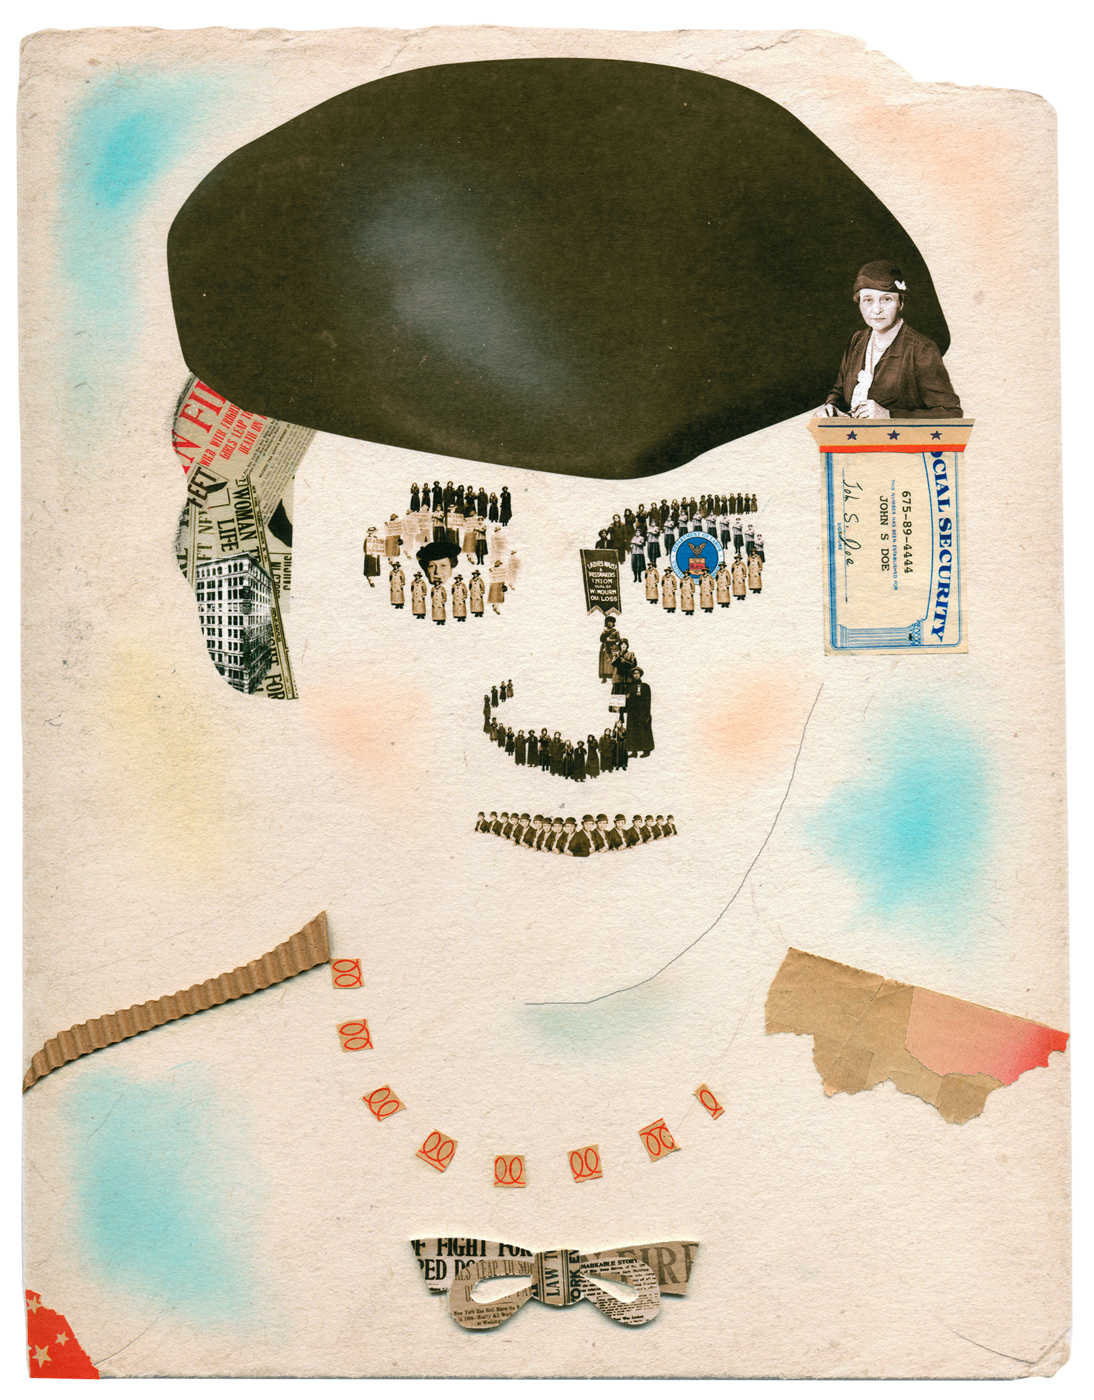 Francis Perkins, Architect of Social Security. Collage on paper for an exhibition.